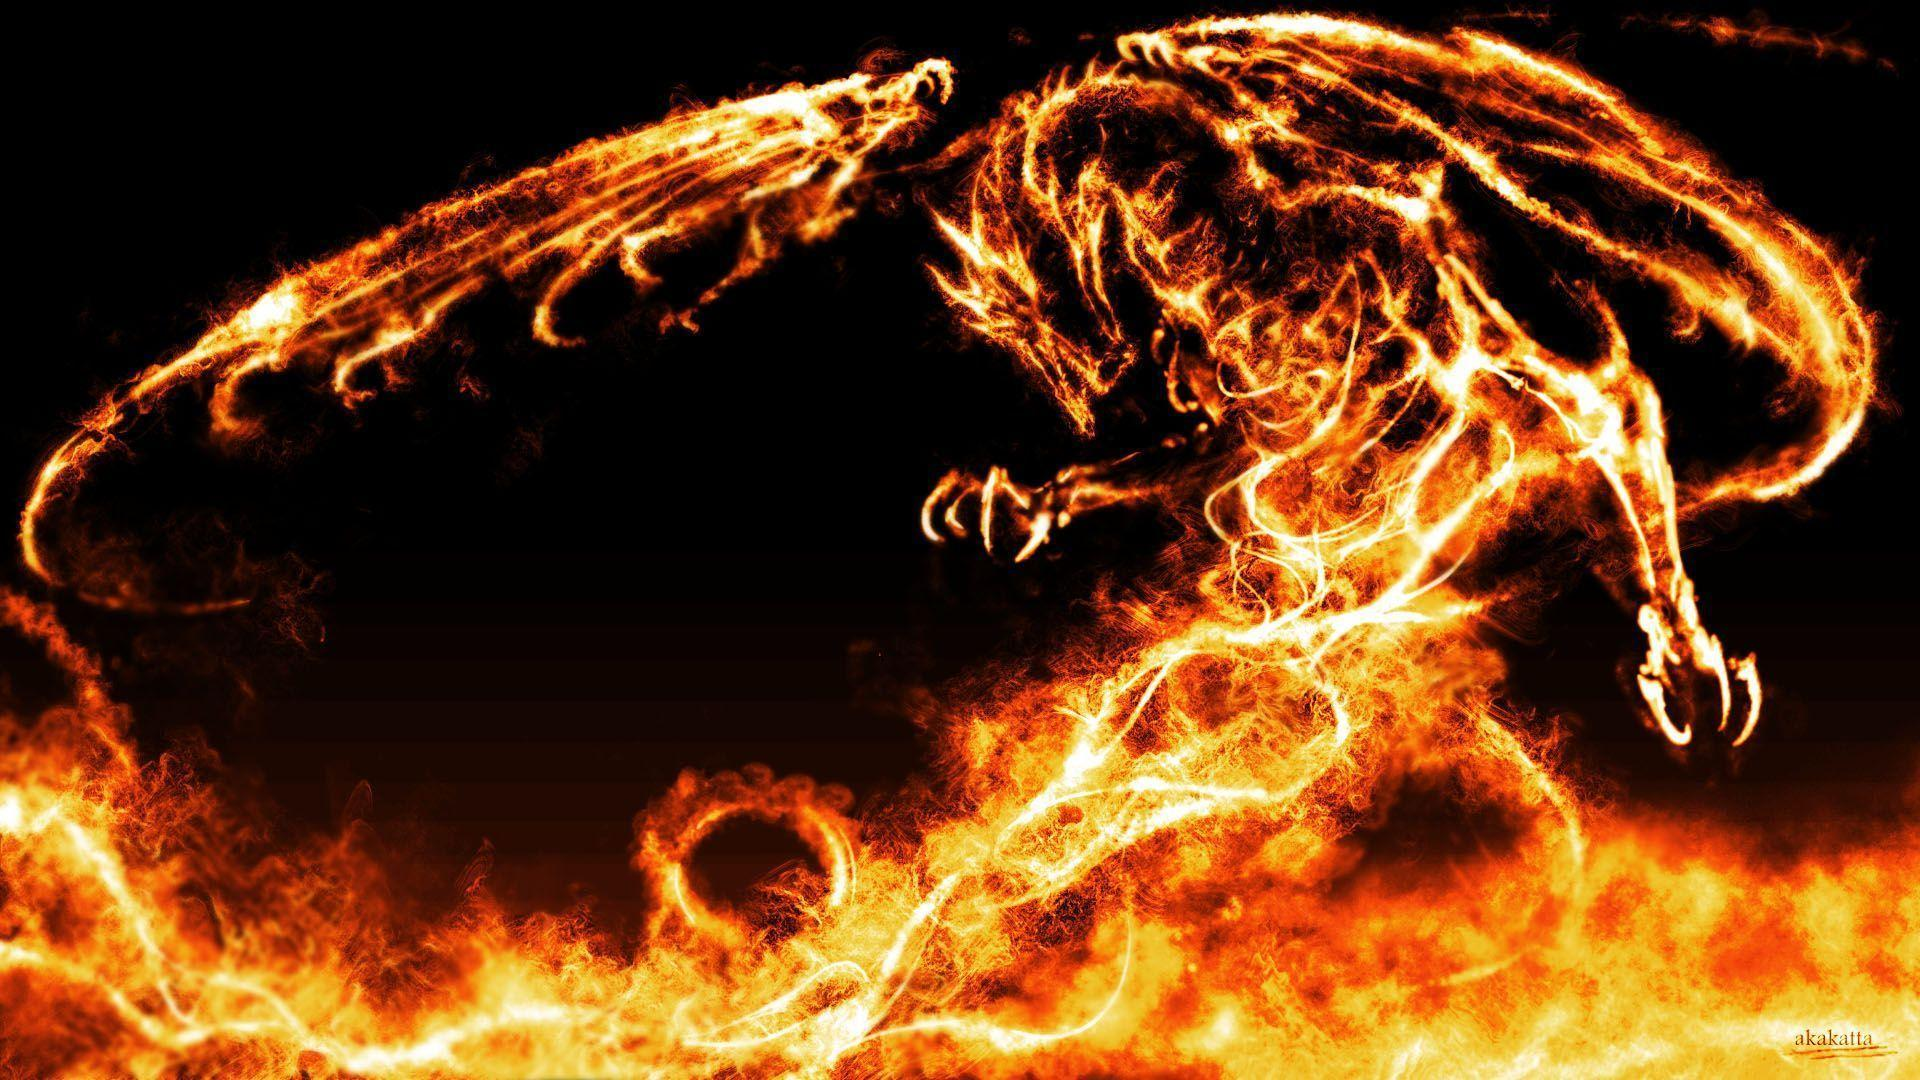 Fire and Ice Dragon Wallpapers, wallpaper, Fire and Ice Dragon